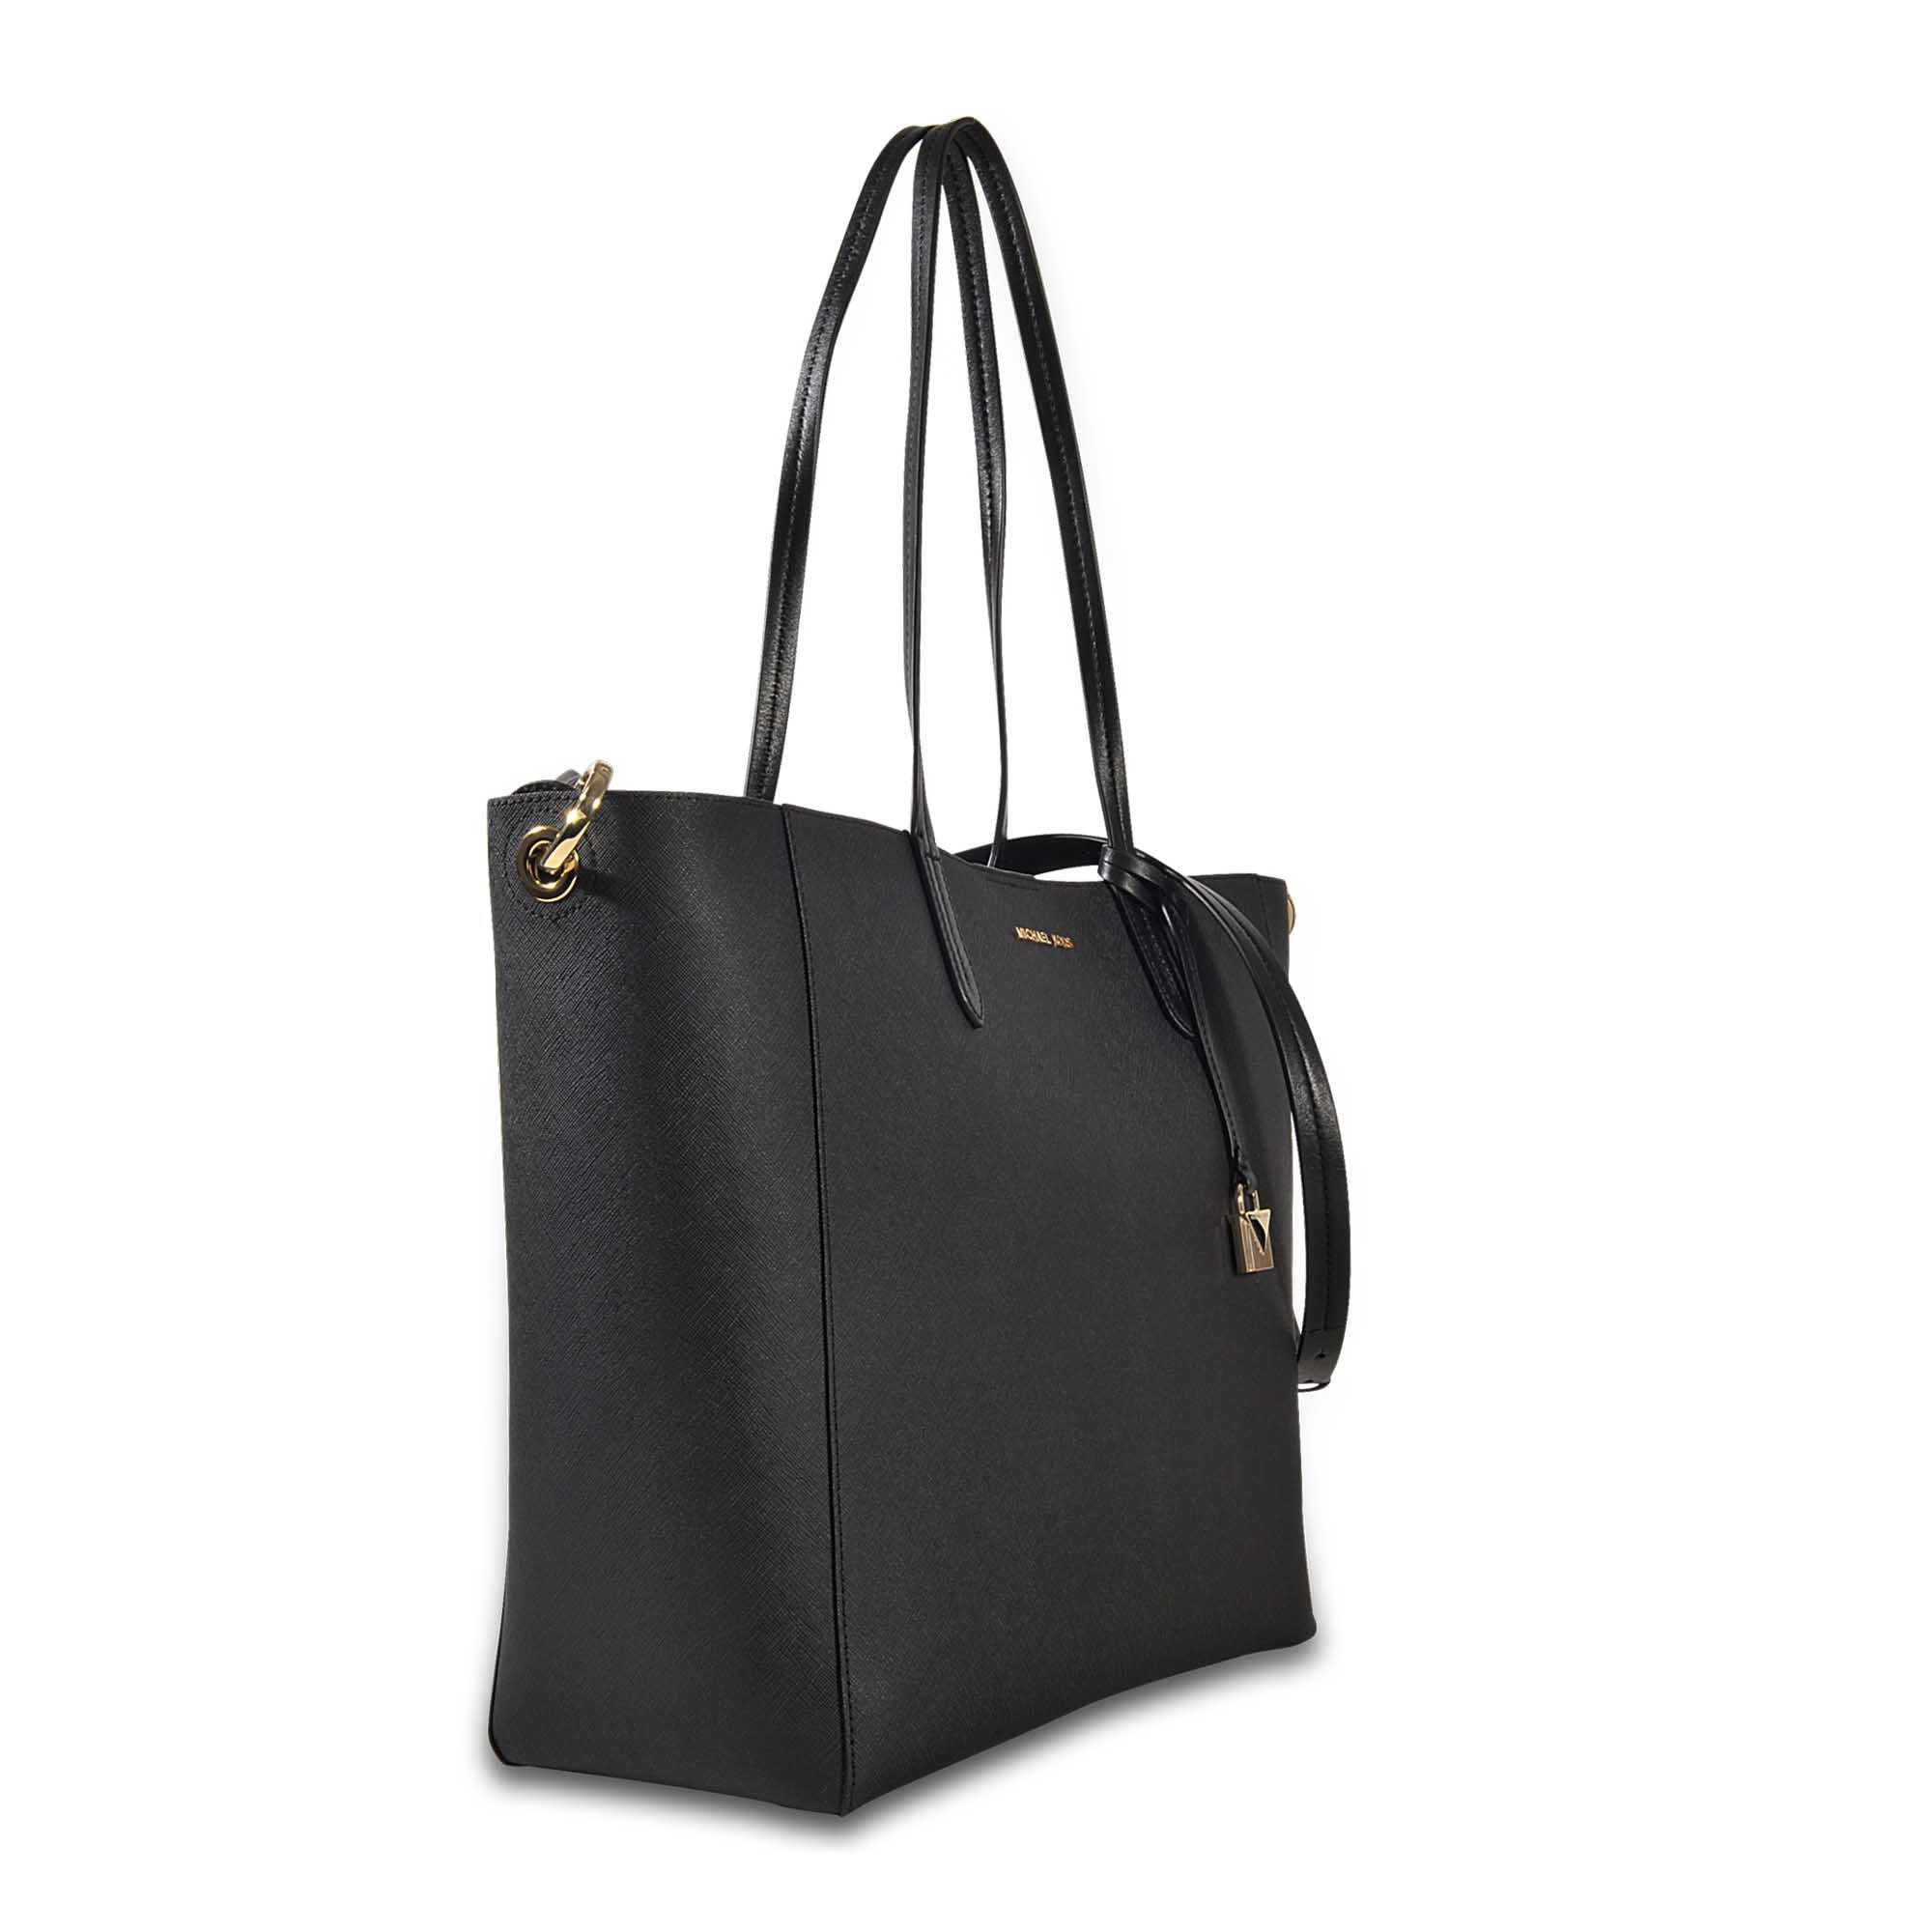 5f774a73c9b1 Lyst - MICHAEL Michael Kors Penny Lg Convertible Tote in Black